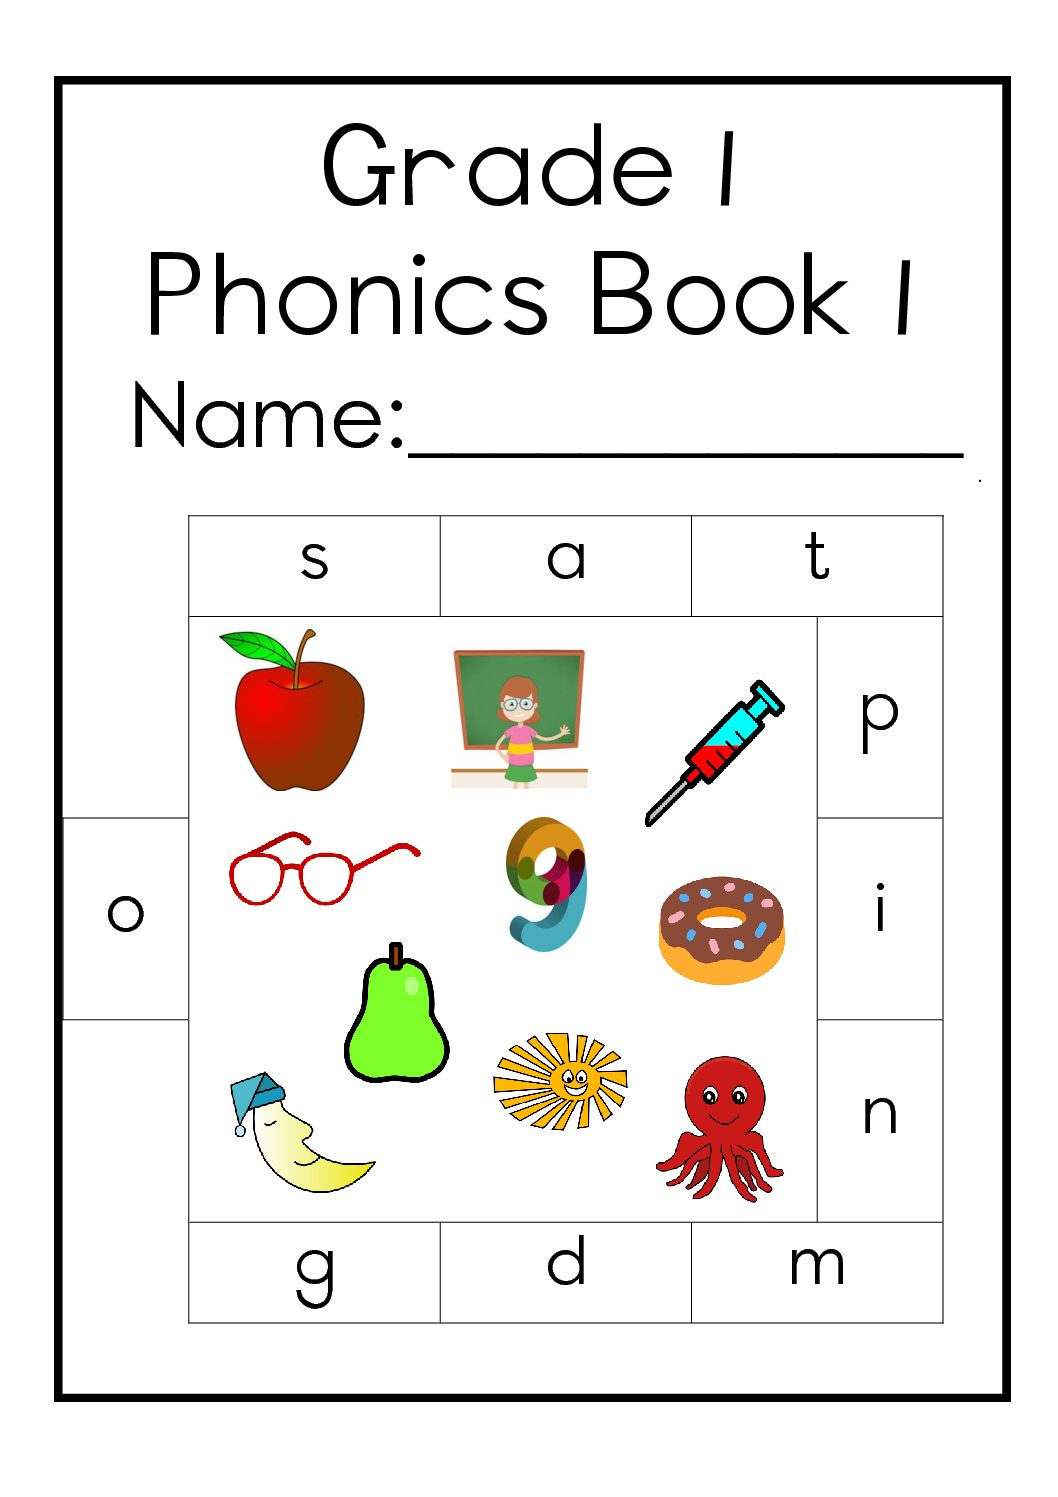 Teach Child How To Read Grade 1 Phonics Test